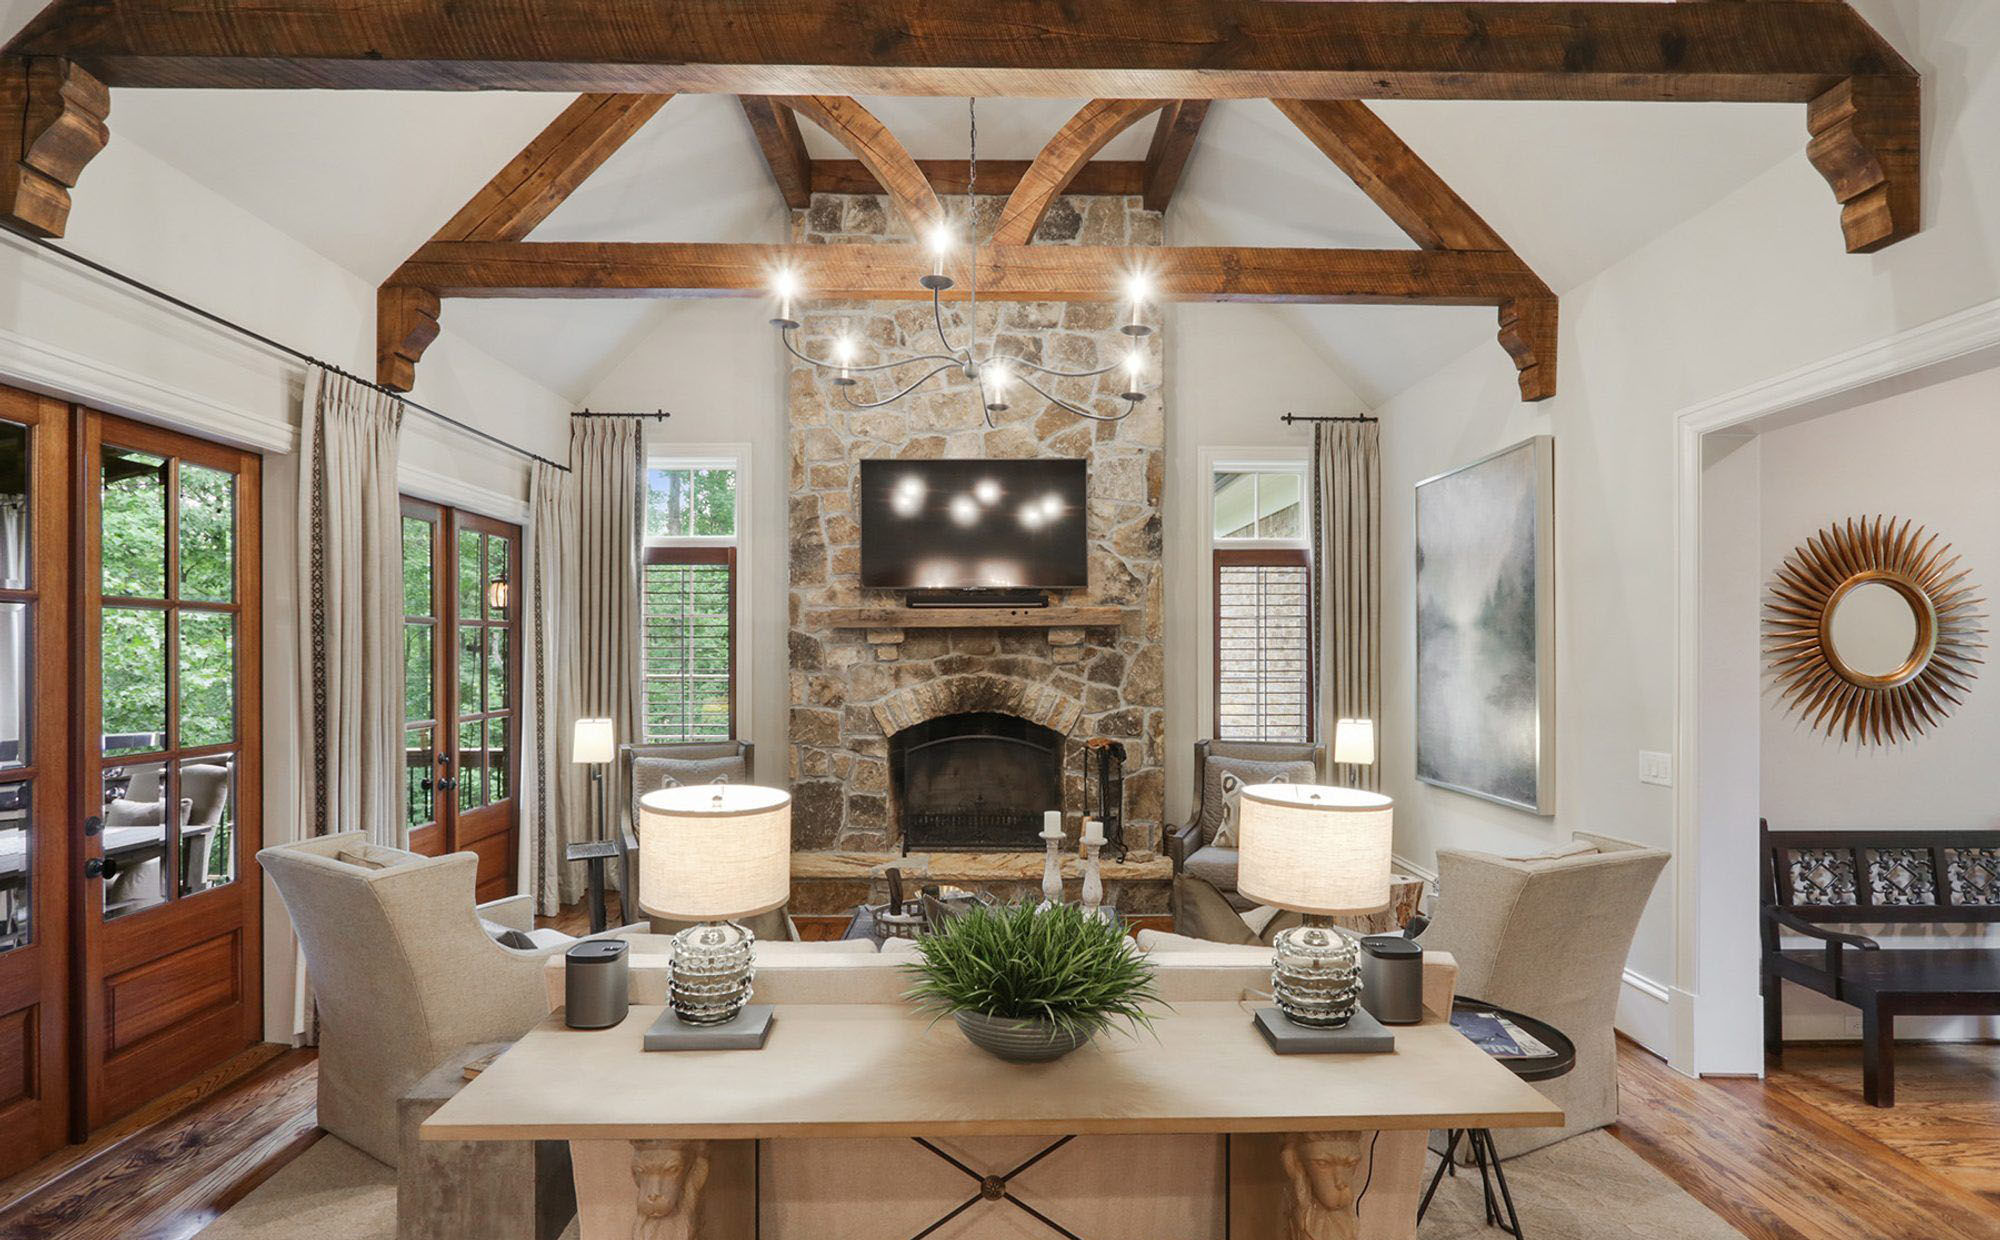 living room with vaulted ceilings and exposed wood beams. wood burning stone fireplace surround. rustic style.